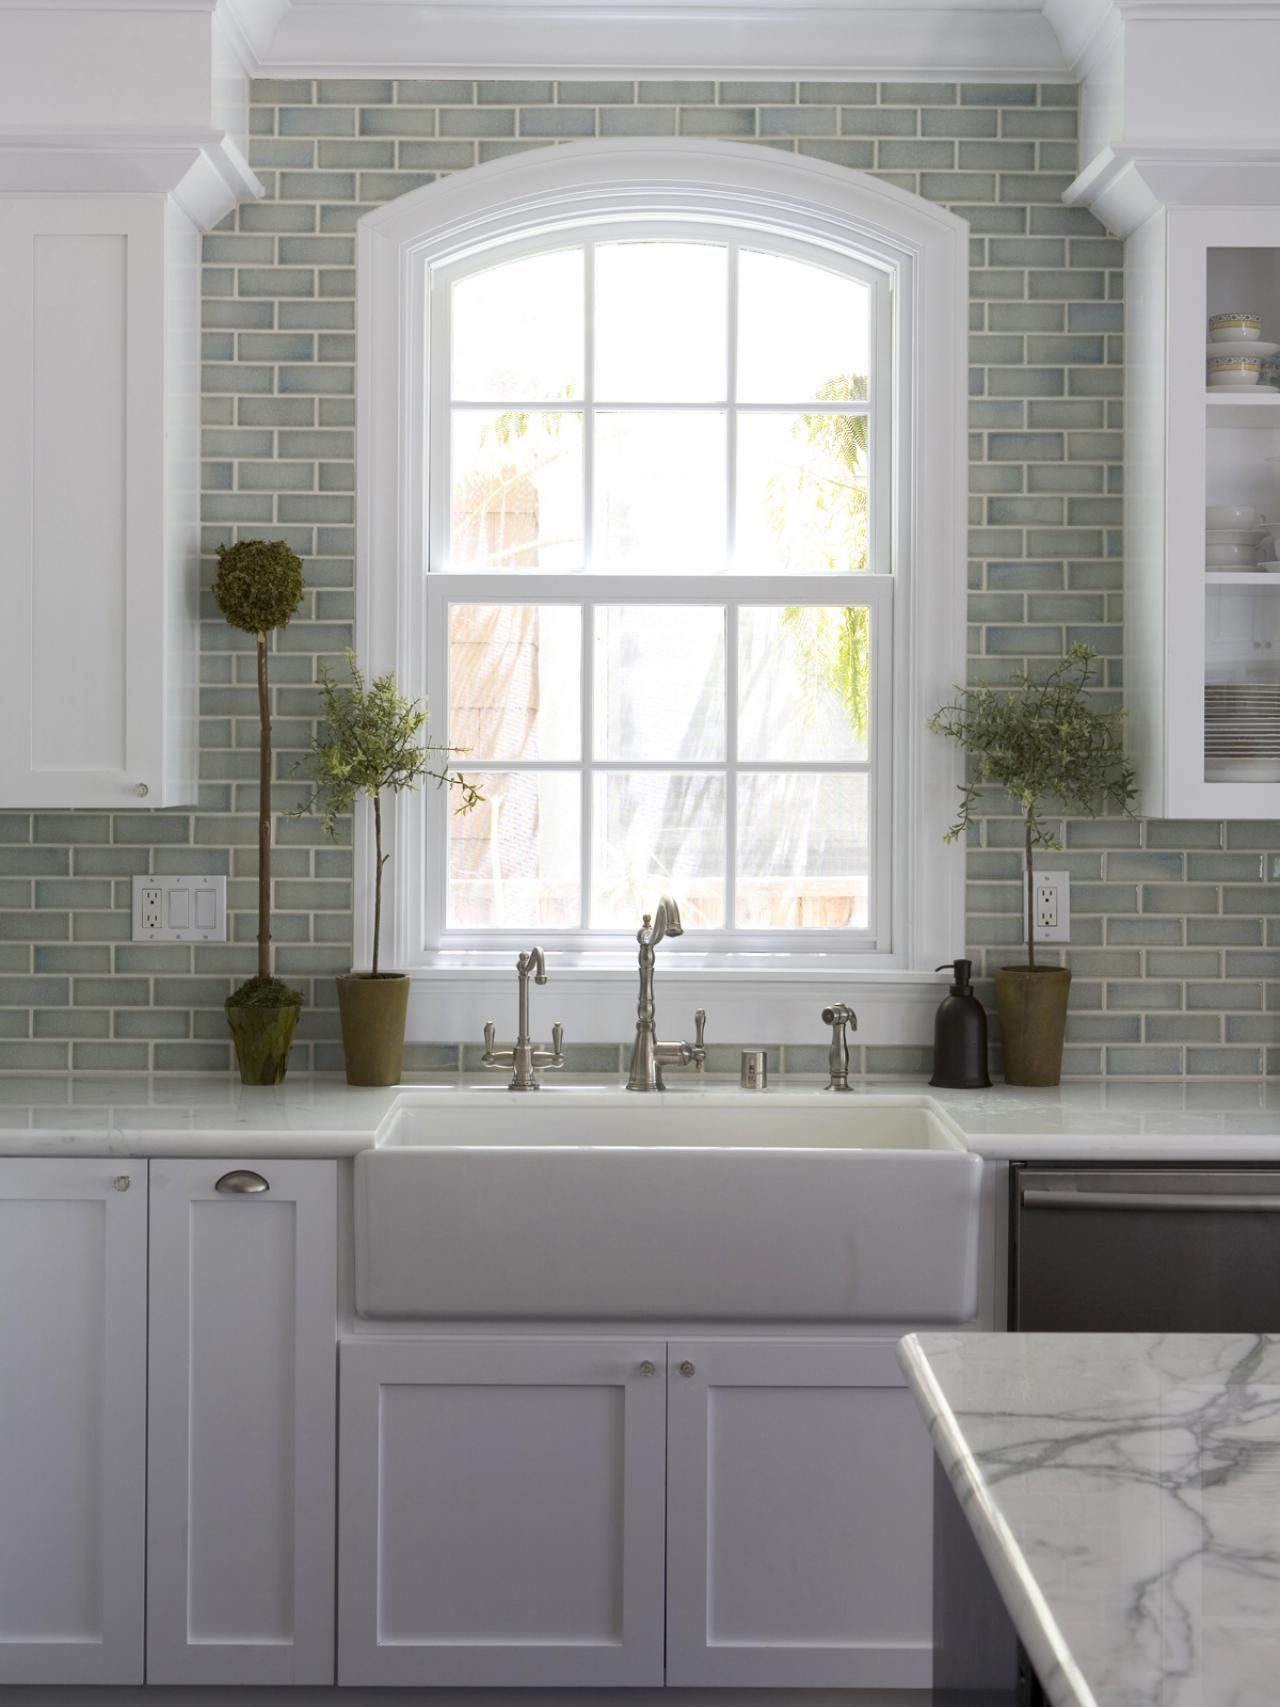 Mosaic Backsplashes Pictures Ideas Tips From Hgtv Green Backsplash Kitchen Design Kitchen Remodel